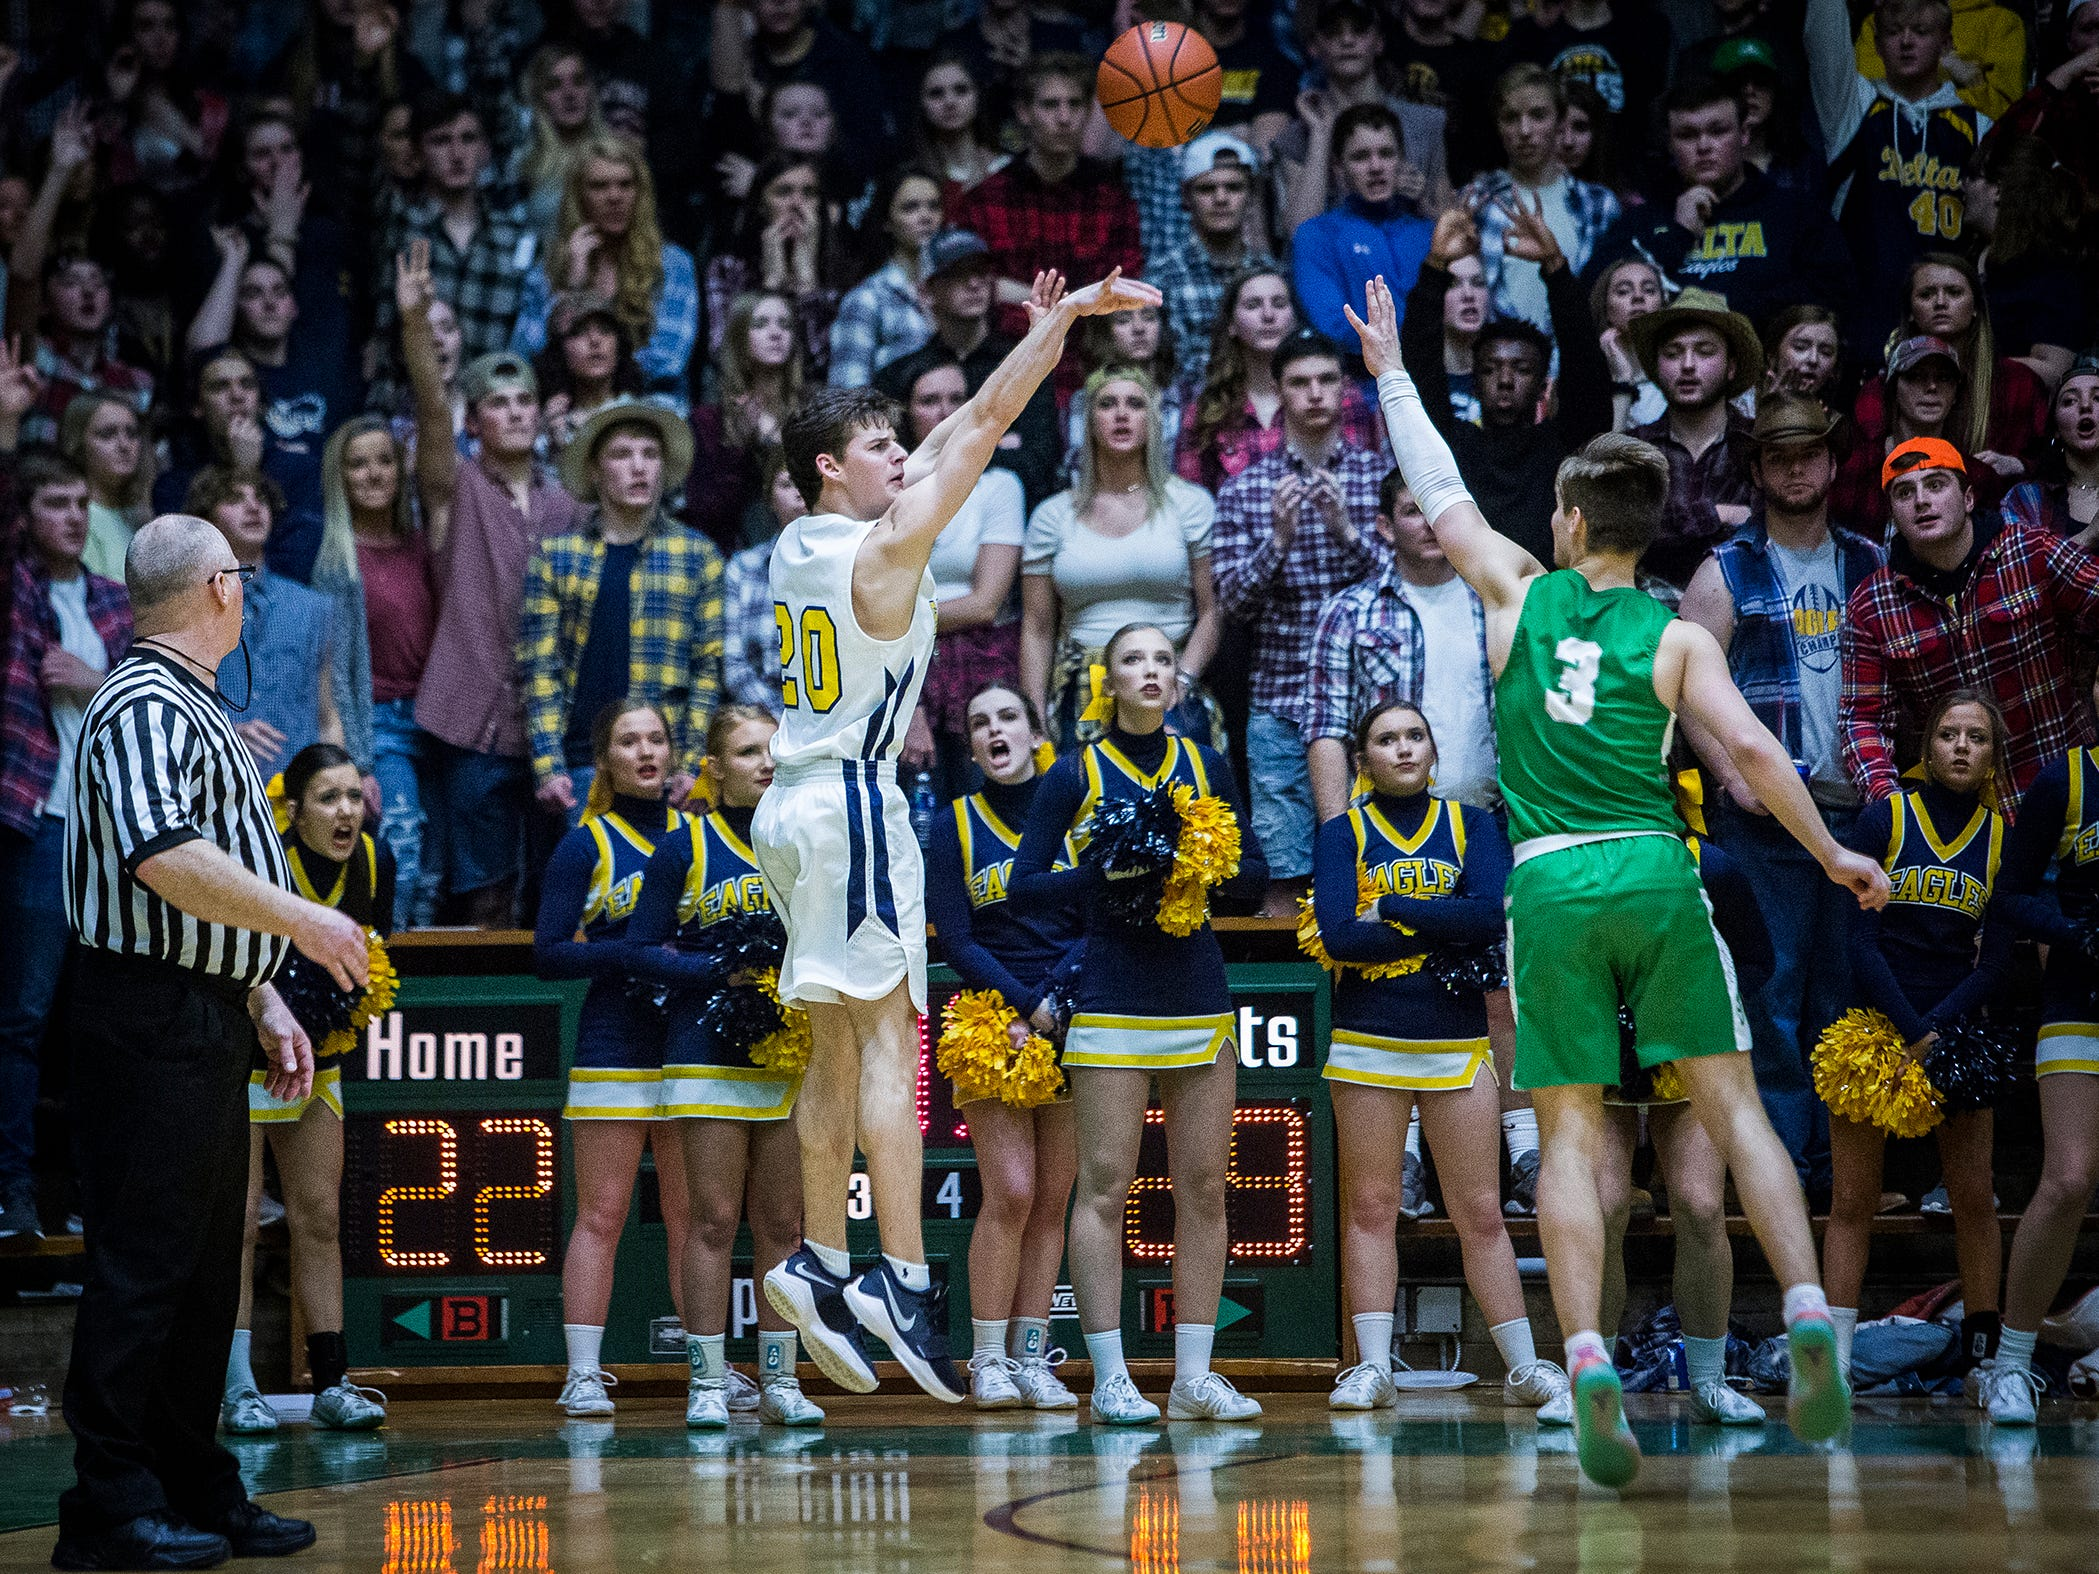 Delta's Josh Greenberg shoots against New Castle during their sectional championship game at New Castle High School Saturday, March 2, 2019.